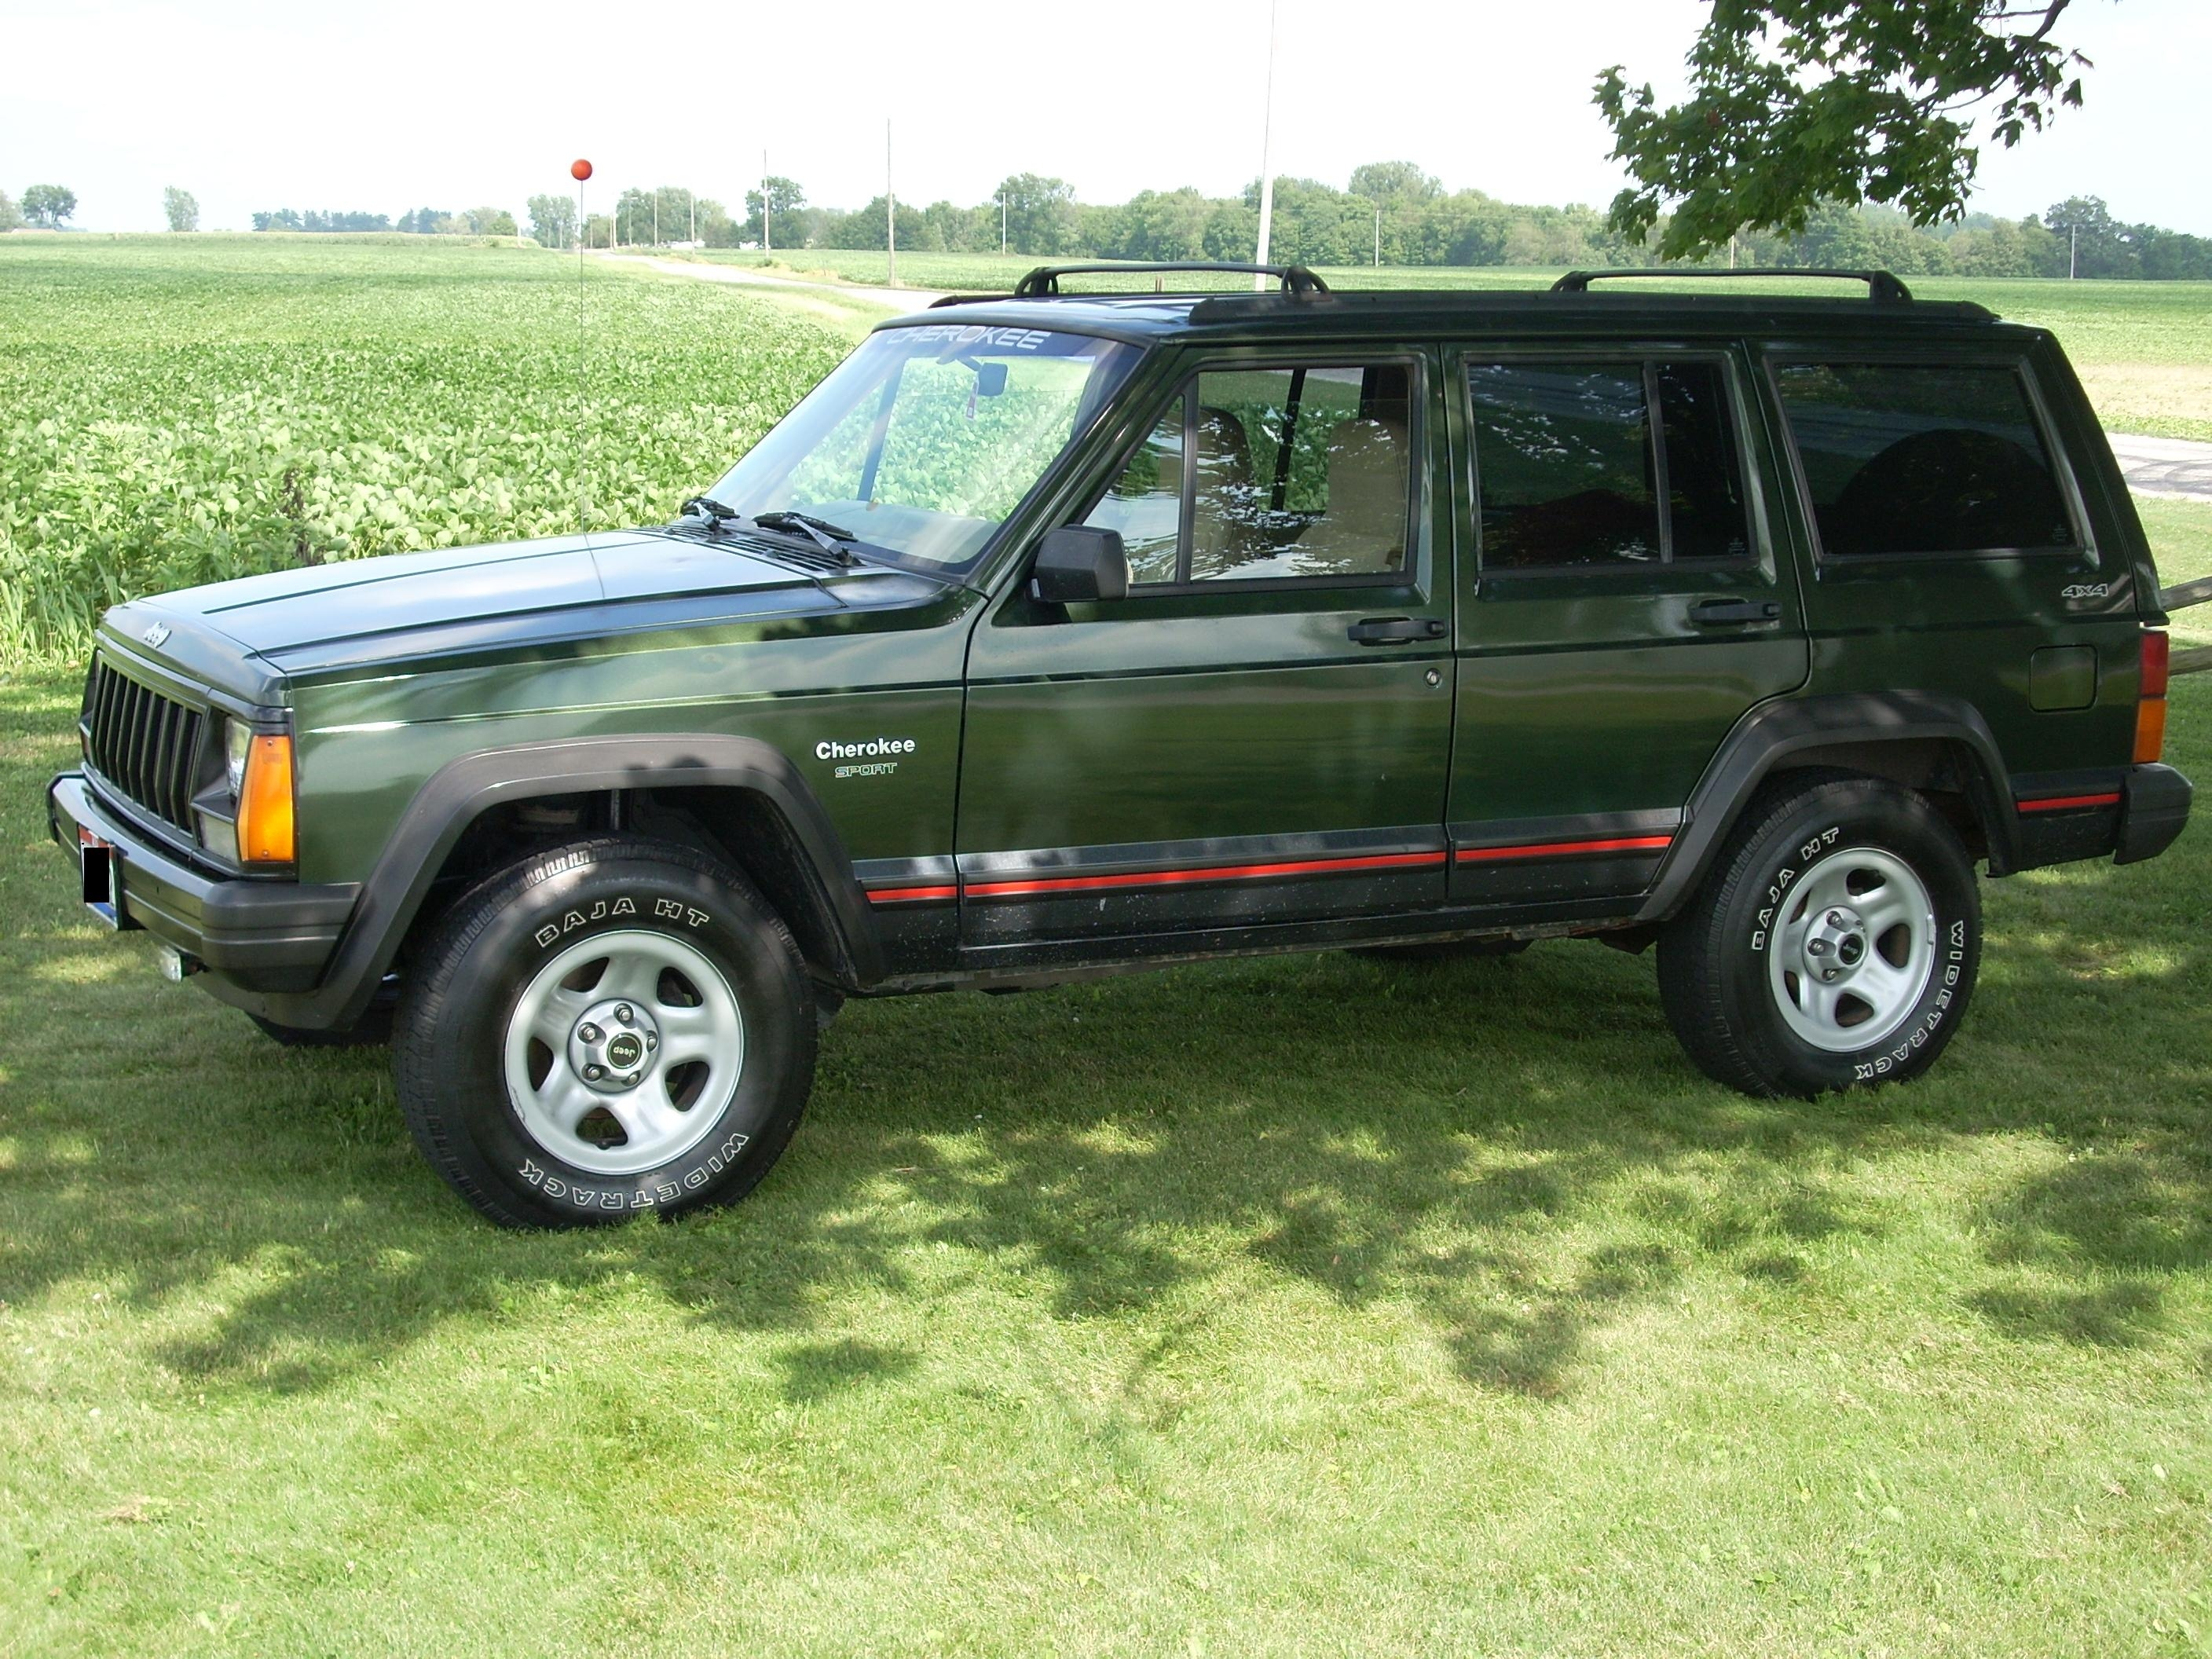 X96xjsportx 1996 Jeep Cherokeesport 4d S Photo Gallery At Cardomain